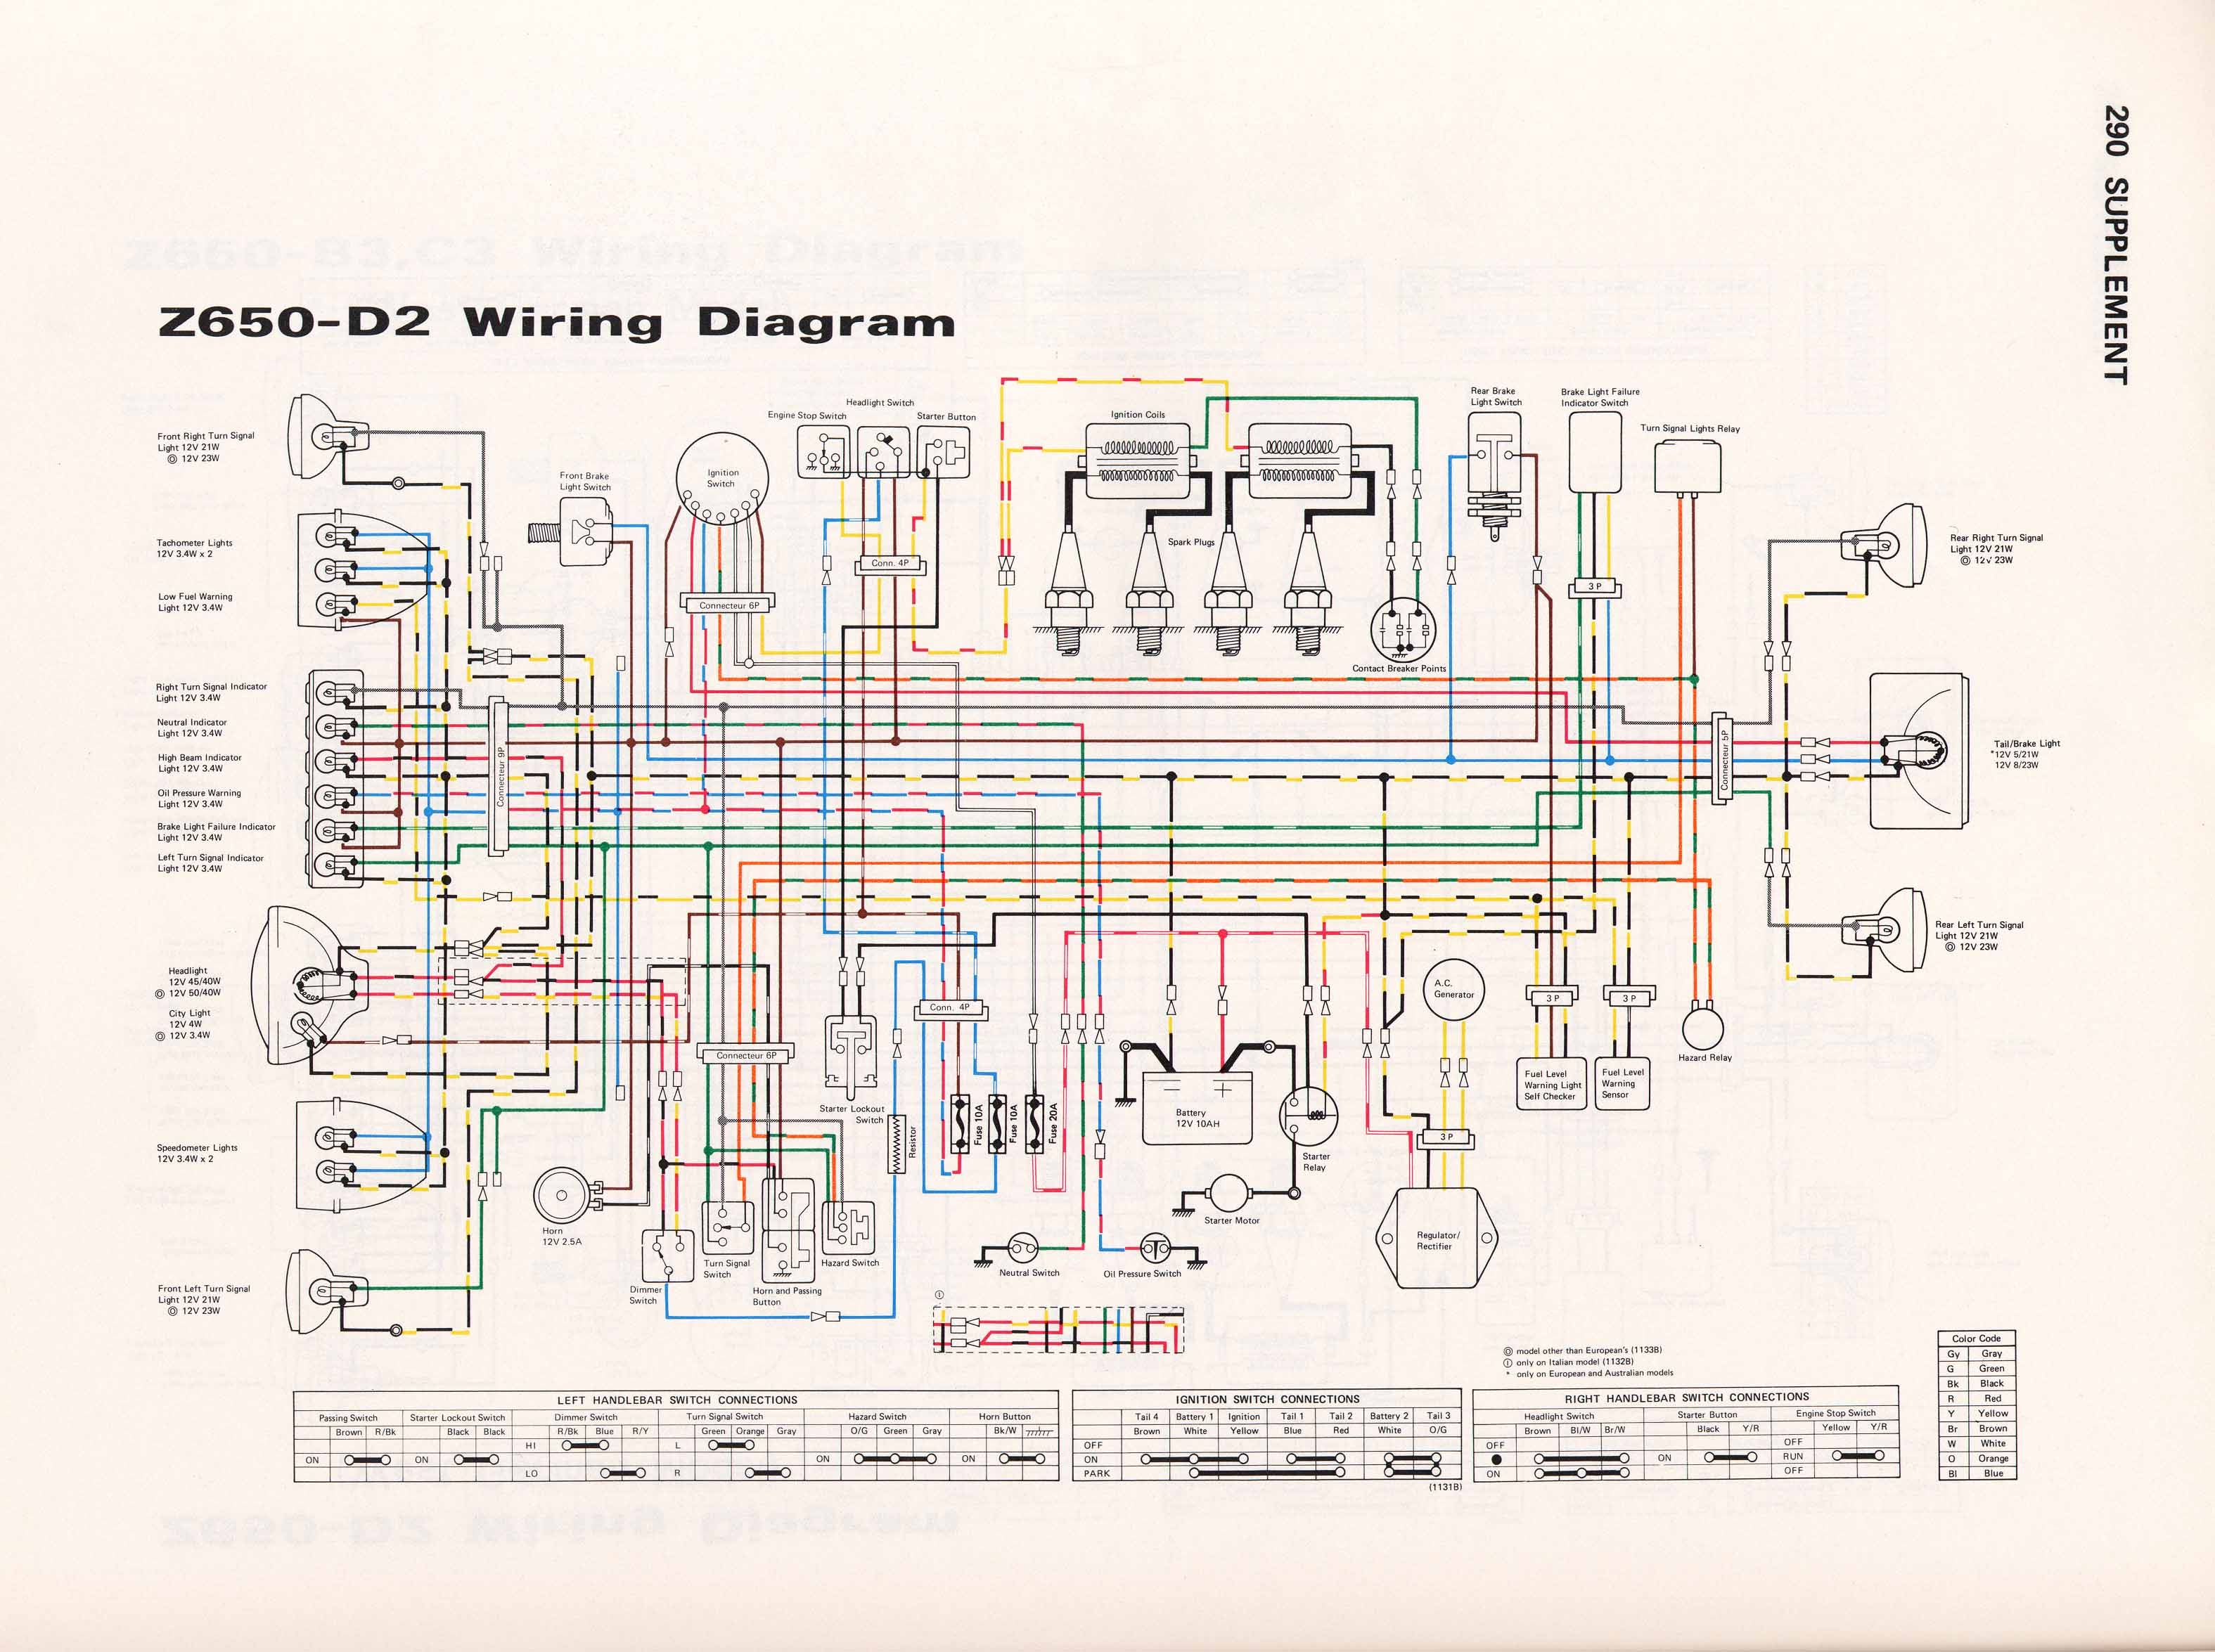 Kawasaki 650r Wiring Diagram Diagrams For Dummies 2008 Library Rh 28 Mac Happen De 07 Ninja